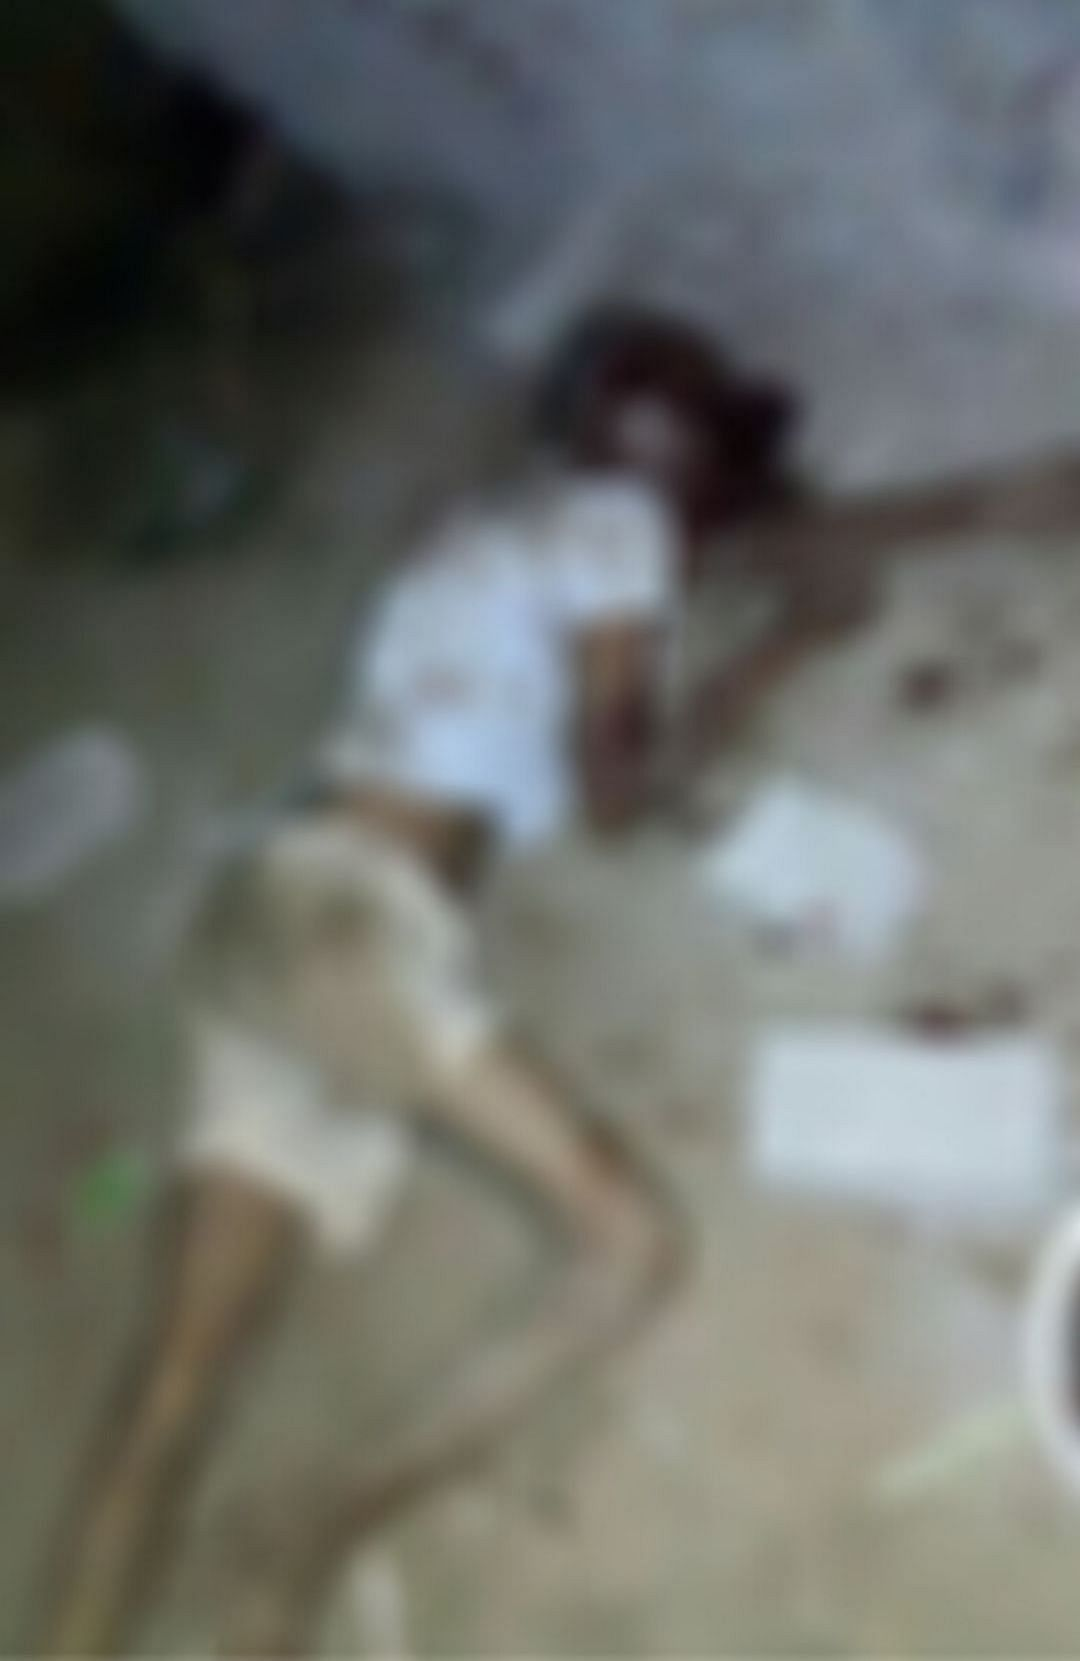 Akhlaq was dragged and beaten by a frenzied mob around 10:30 pm on 28 September 2015.